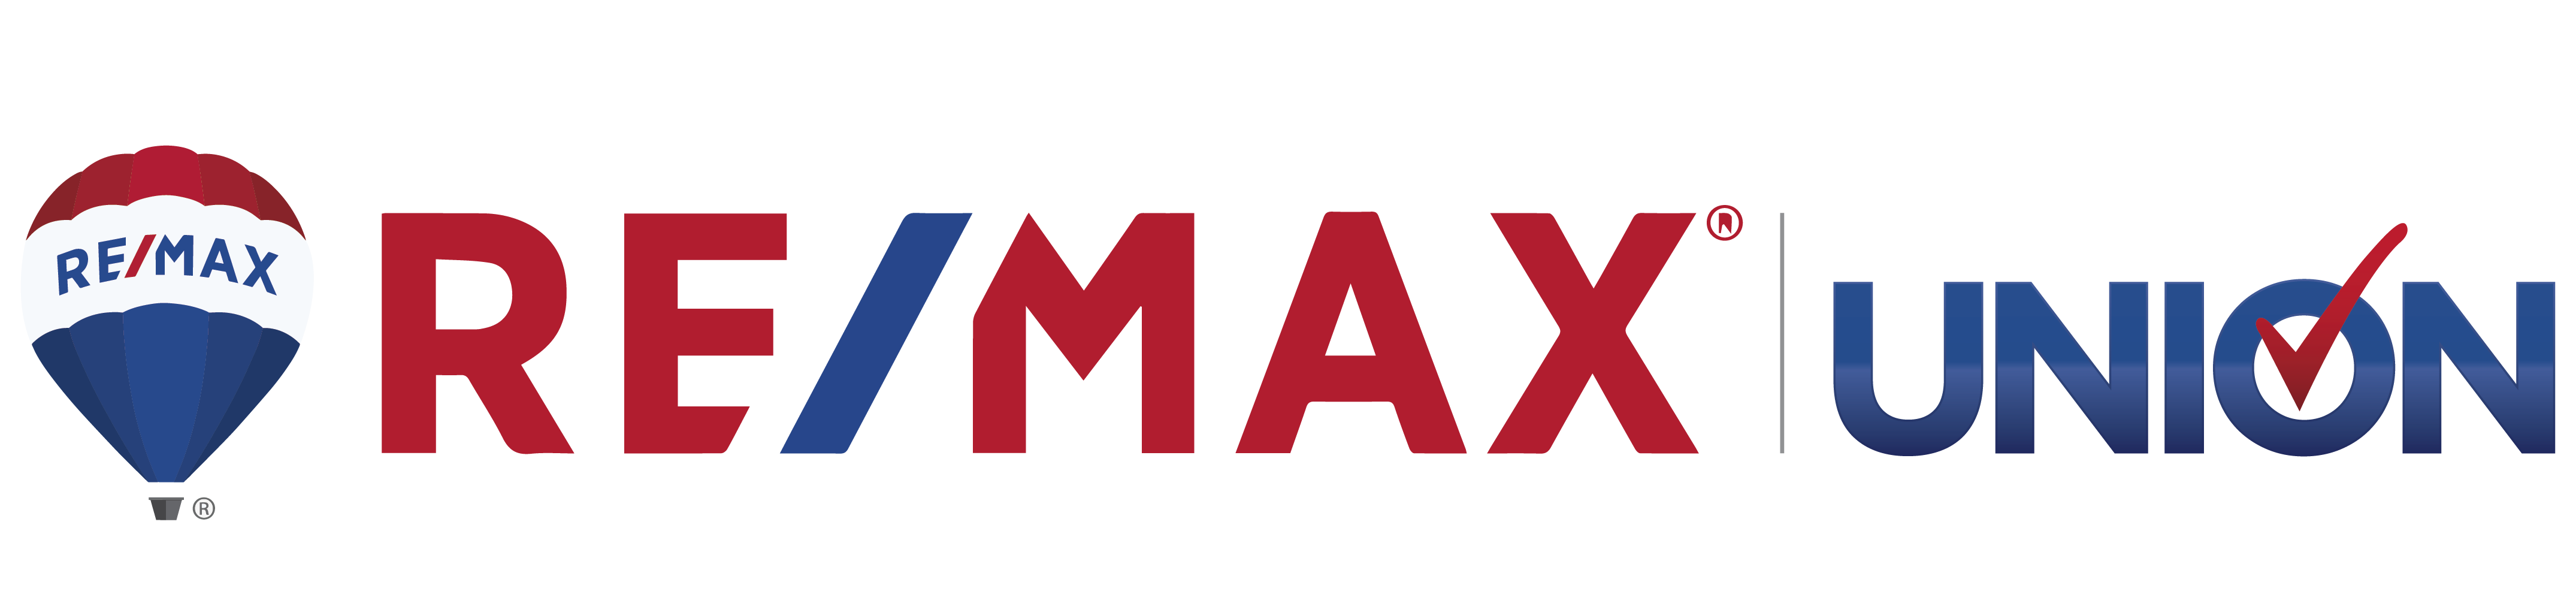 LOGO_REMAX_UNION-01.png